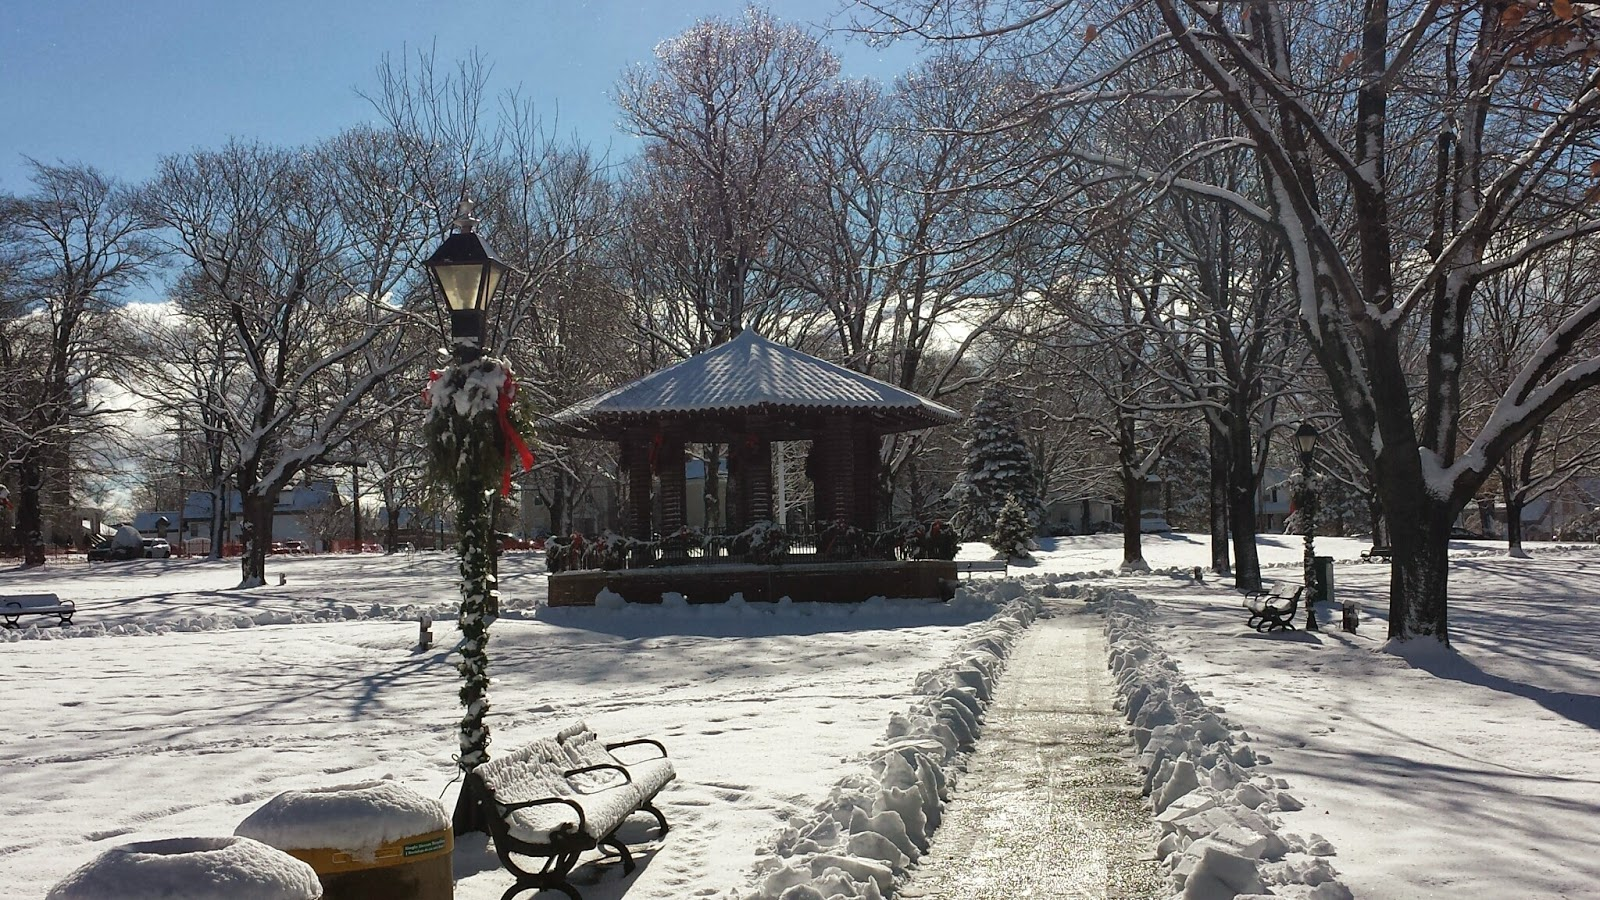 the bandstand surrounded by snow